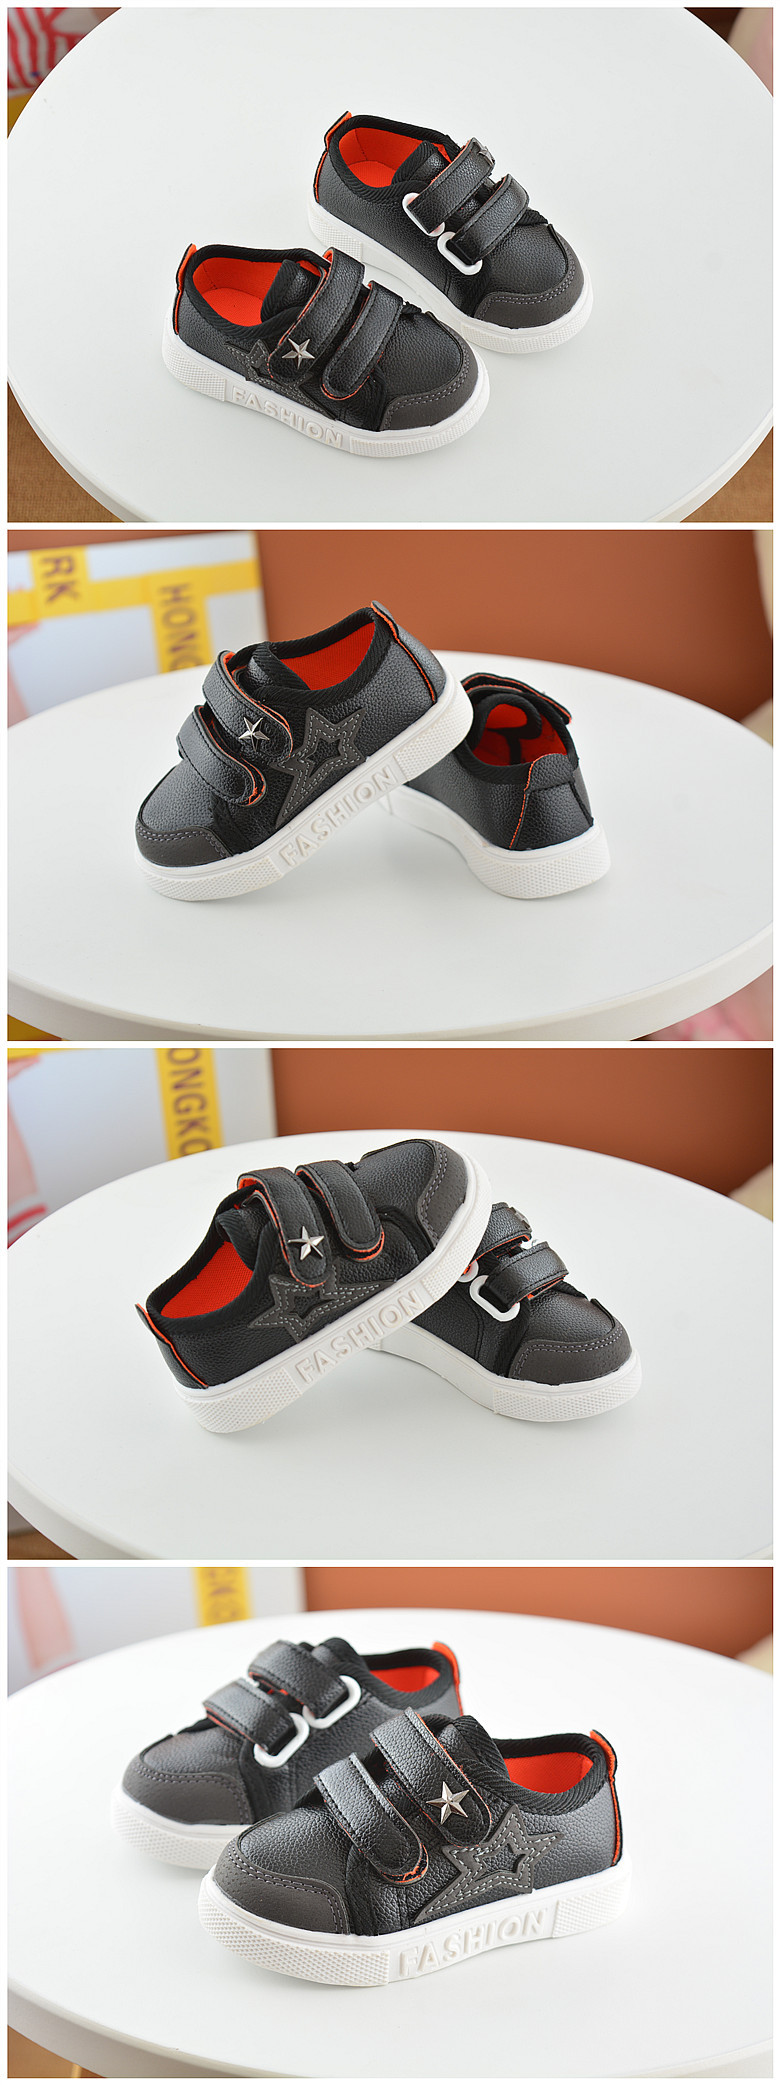 16 New Small Children Canvas Shoes For Kids Baby Boys Canvas Star Shoes Girls Flat Sneakers Low Casual School Students Shoes 3